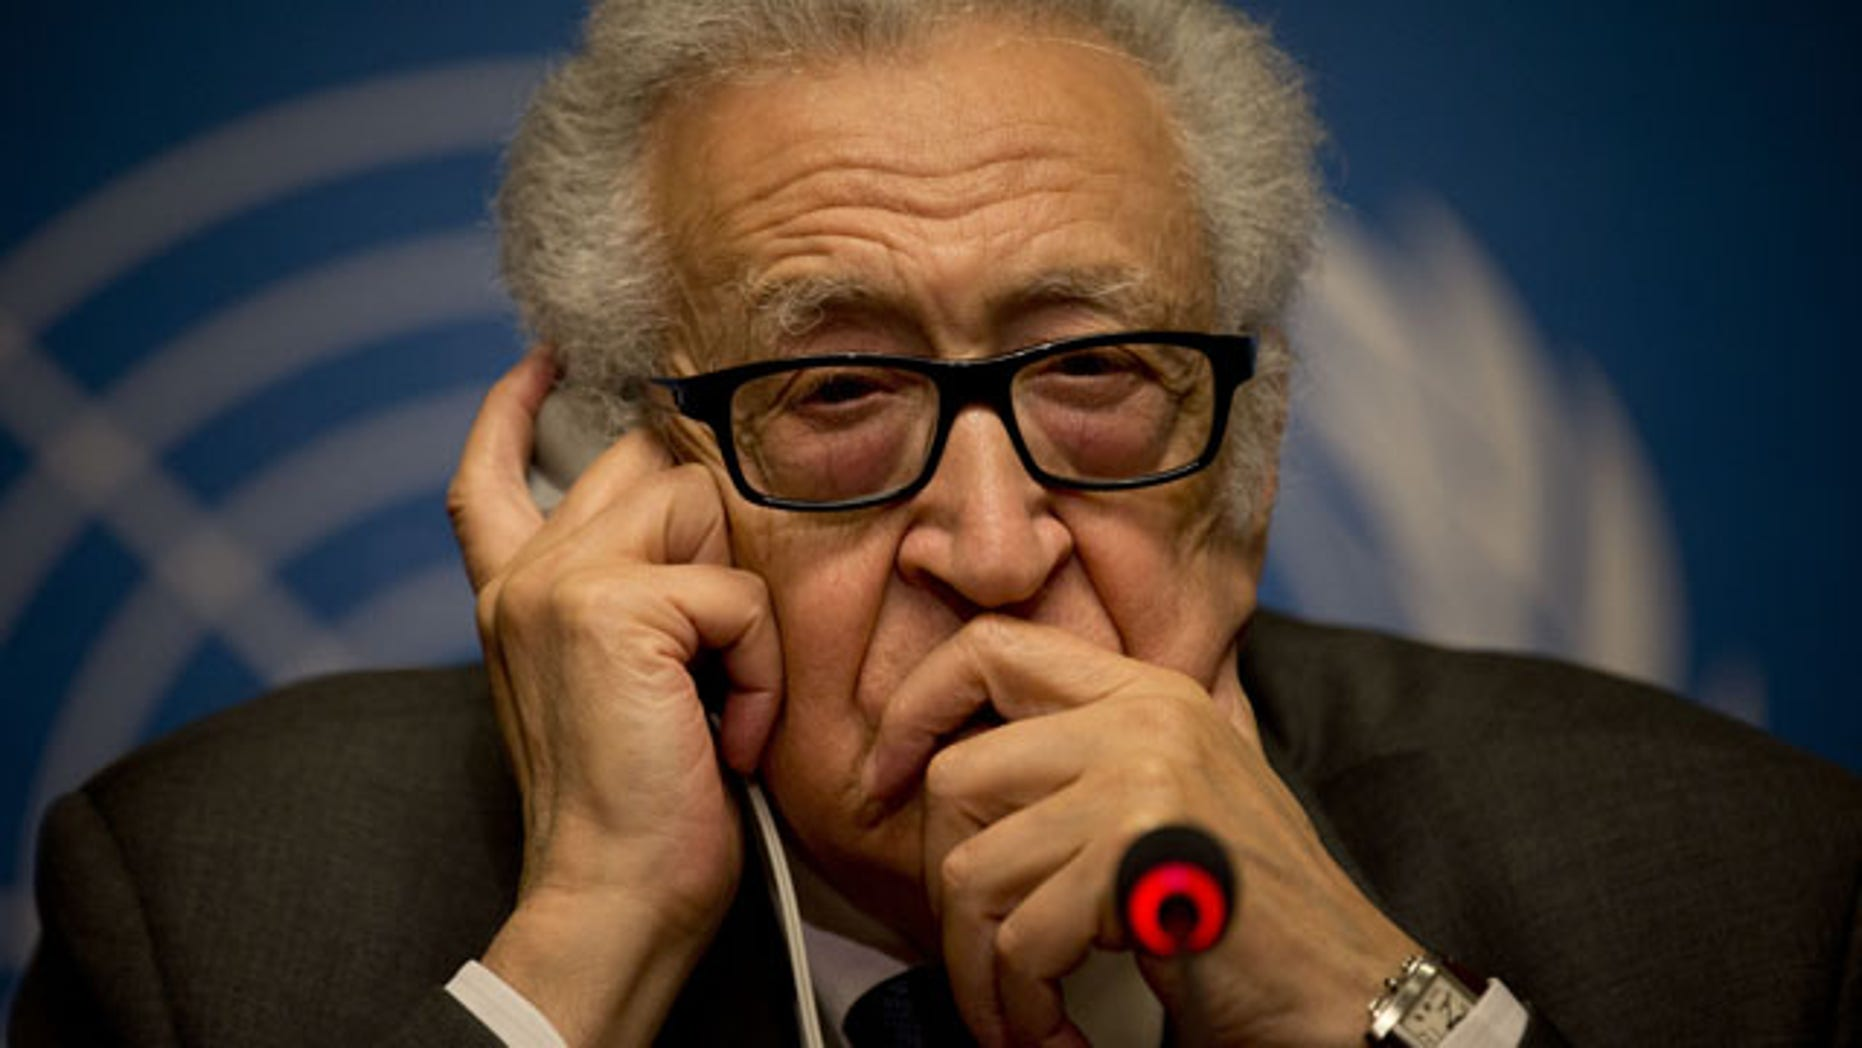 January 25, 2014: U.N. mediator Lakhdar Brahimi gestures during a press briefing at the United Nations headquarters in Geneva, Switzerland. (AP Photo)